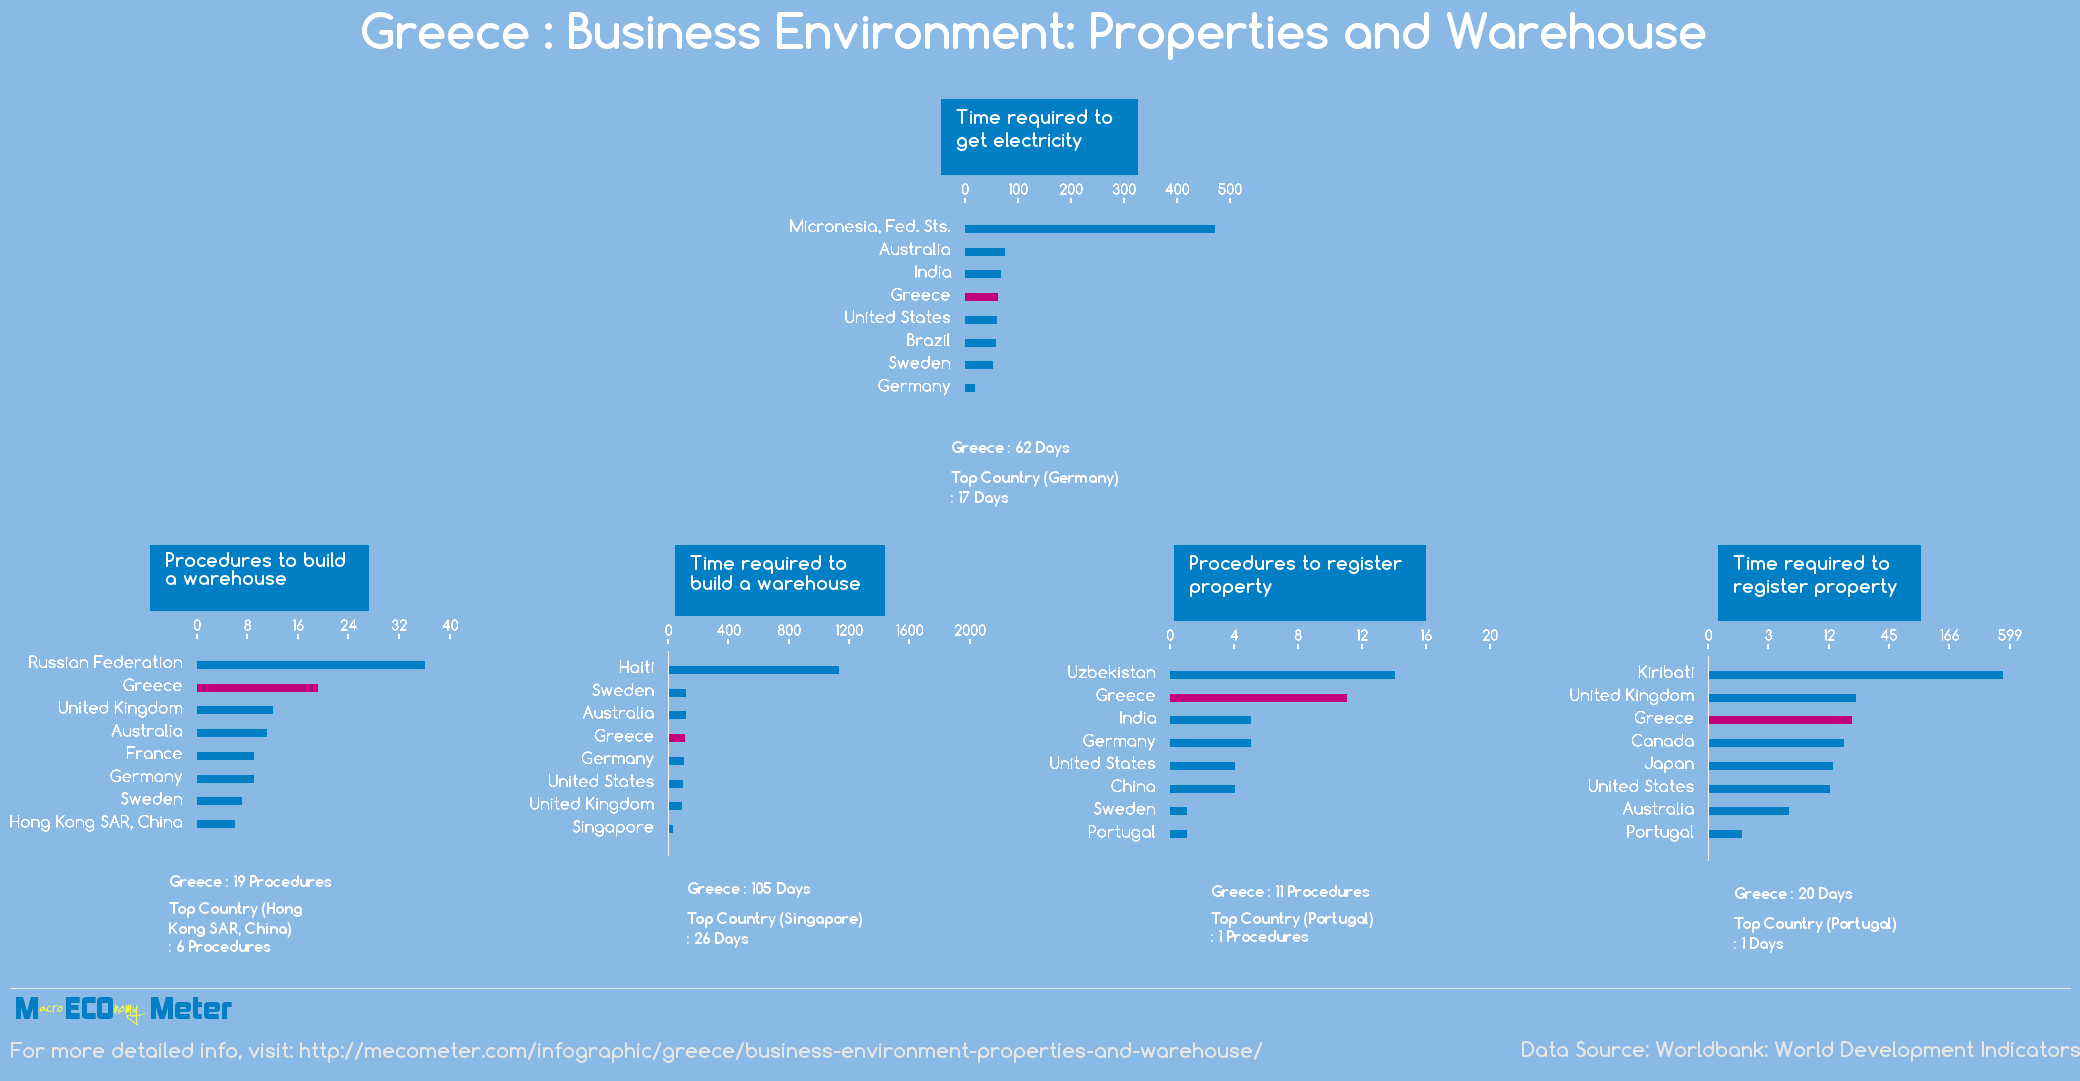 Greece : Business Environment: Properties and Warehouse